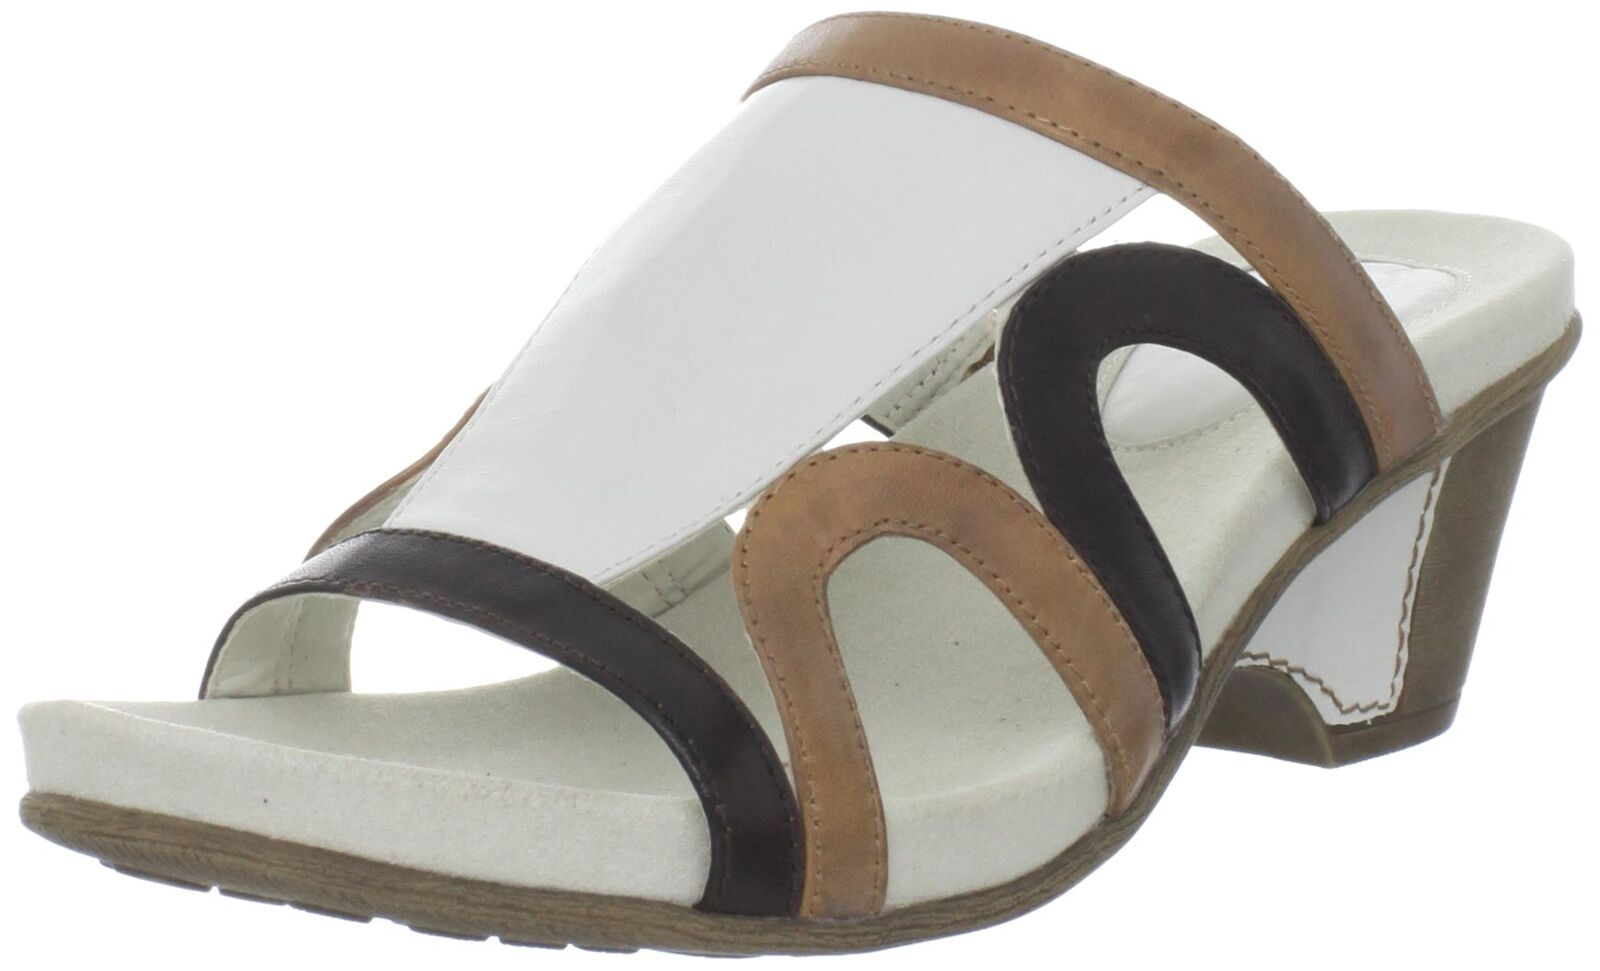 Blondo Women's Leiko Sandal Tan 6 N US